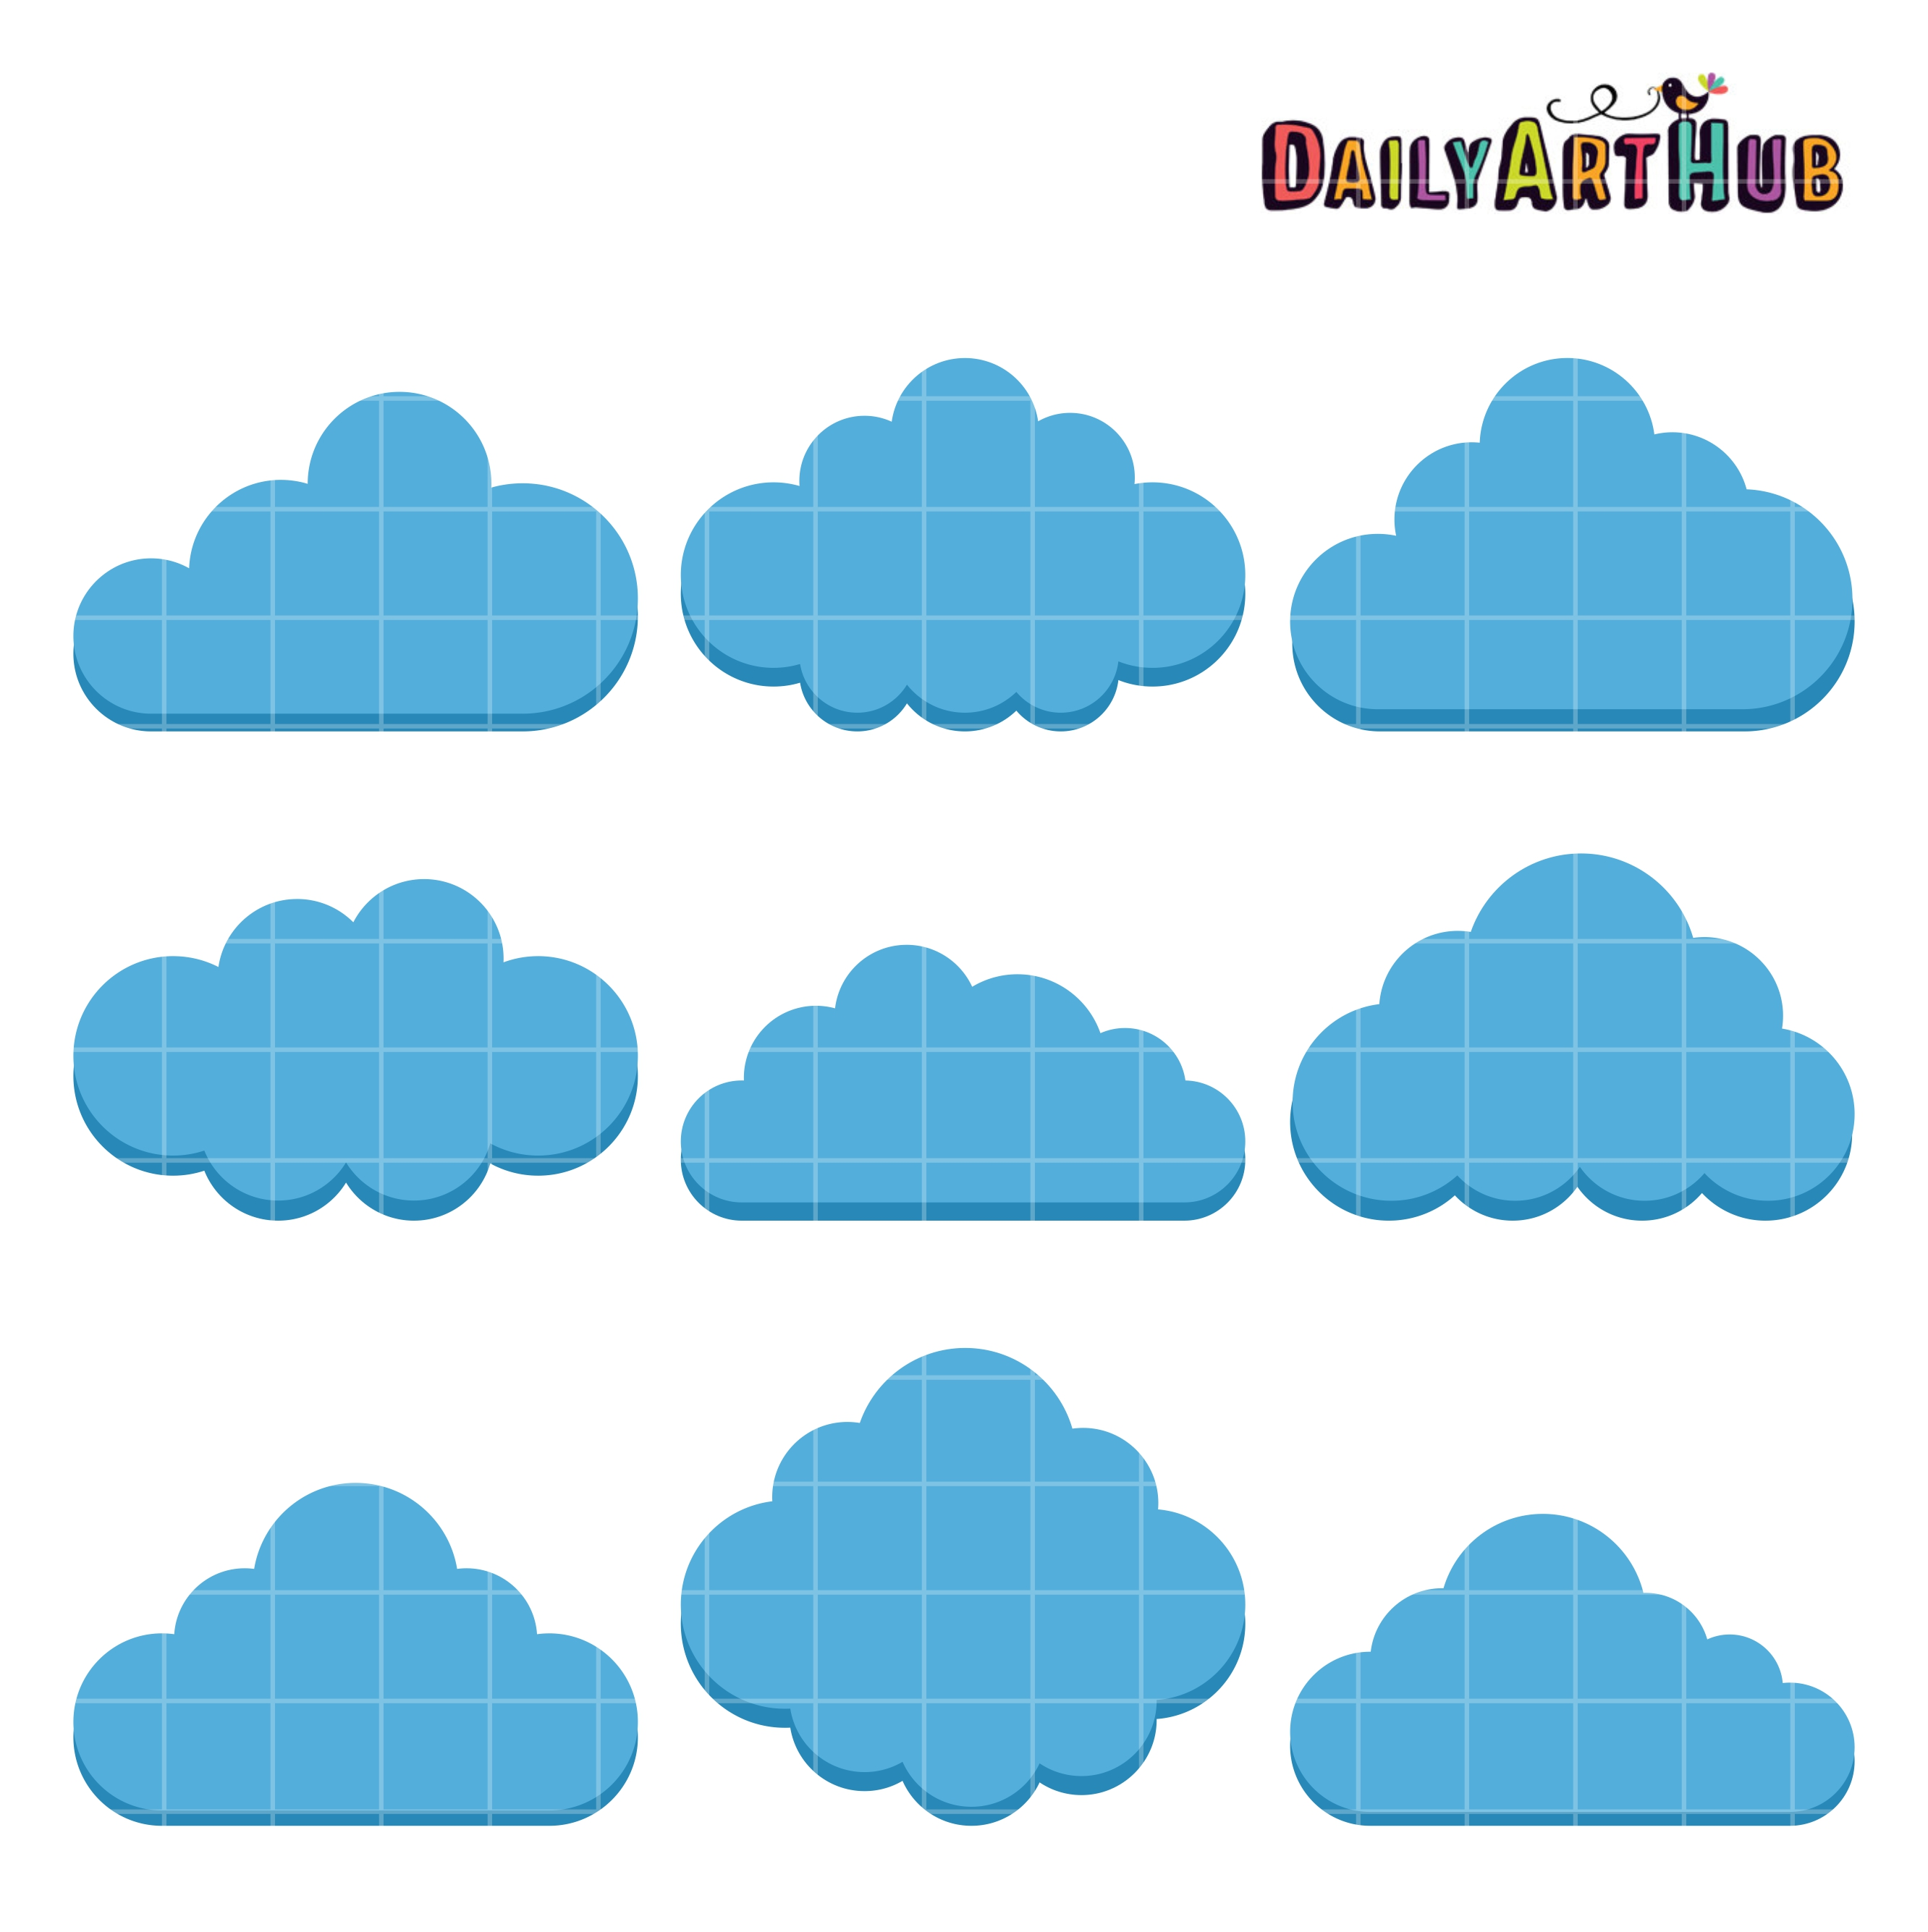 Cloud shapes clip art set daily art hub free clip art everyday - Circular house plans shapes from nature ...